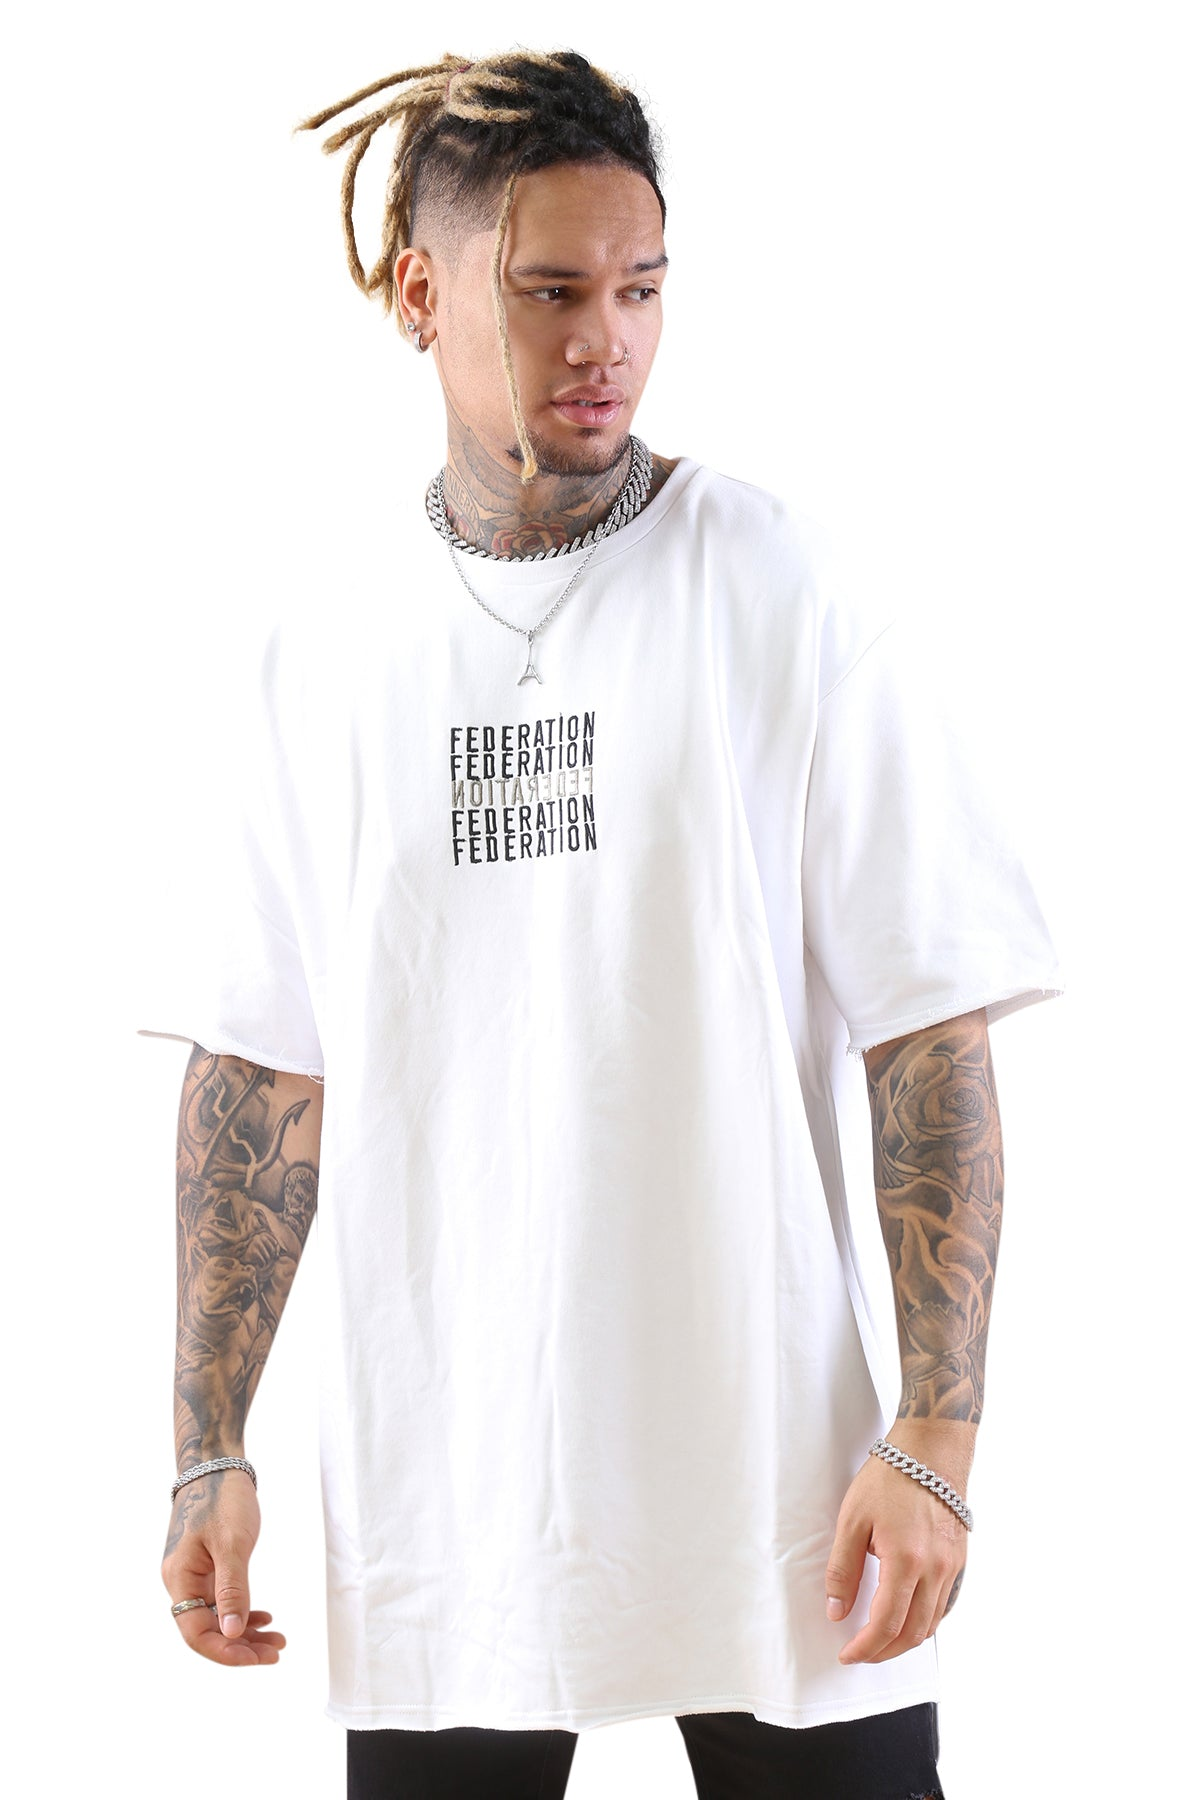 Federation Street Top Backwards White Front